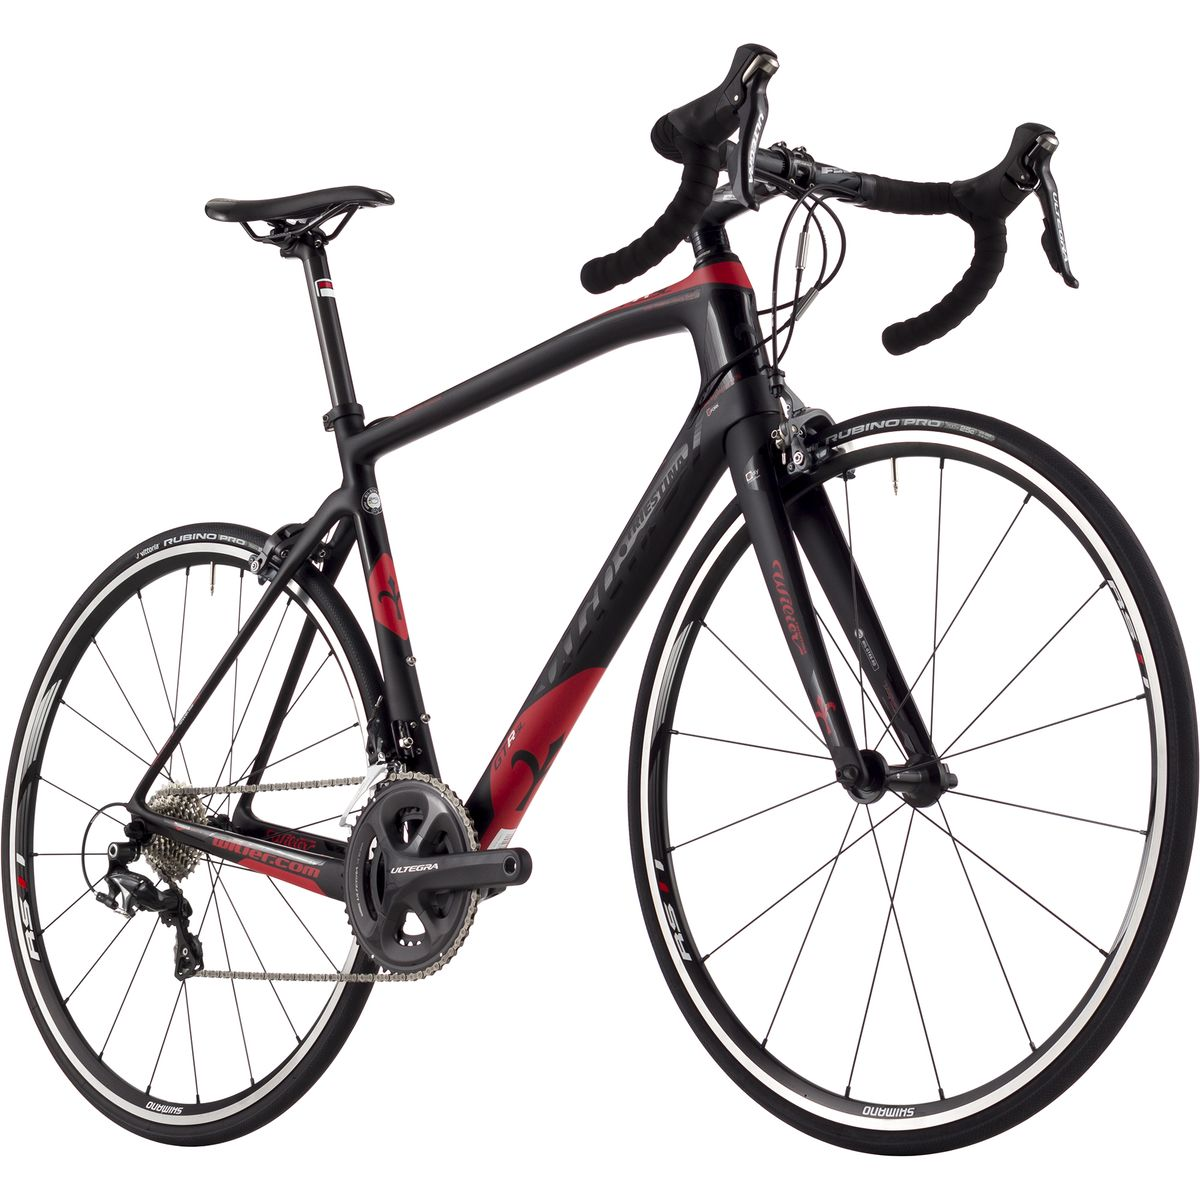 Wilier GTR SL Ultegra Complete Road Bike - 2016 | Competitive Cyclist